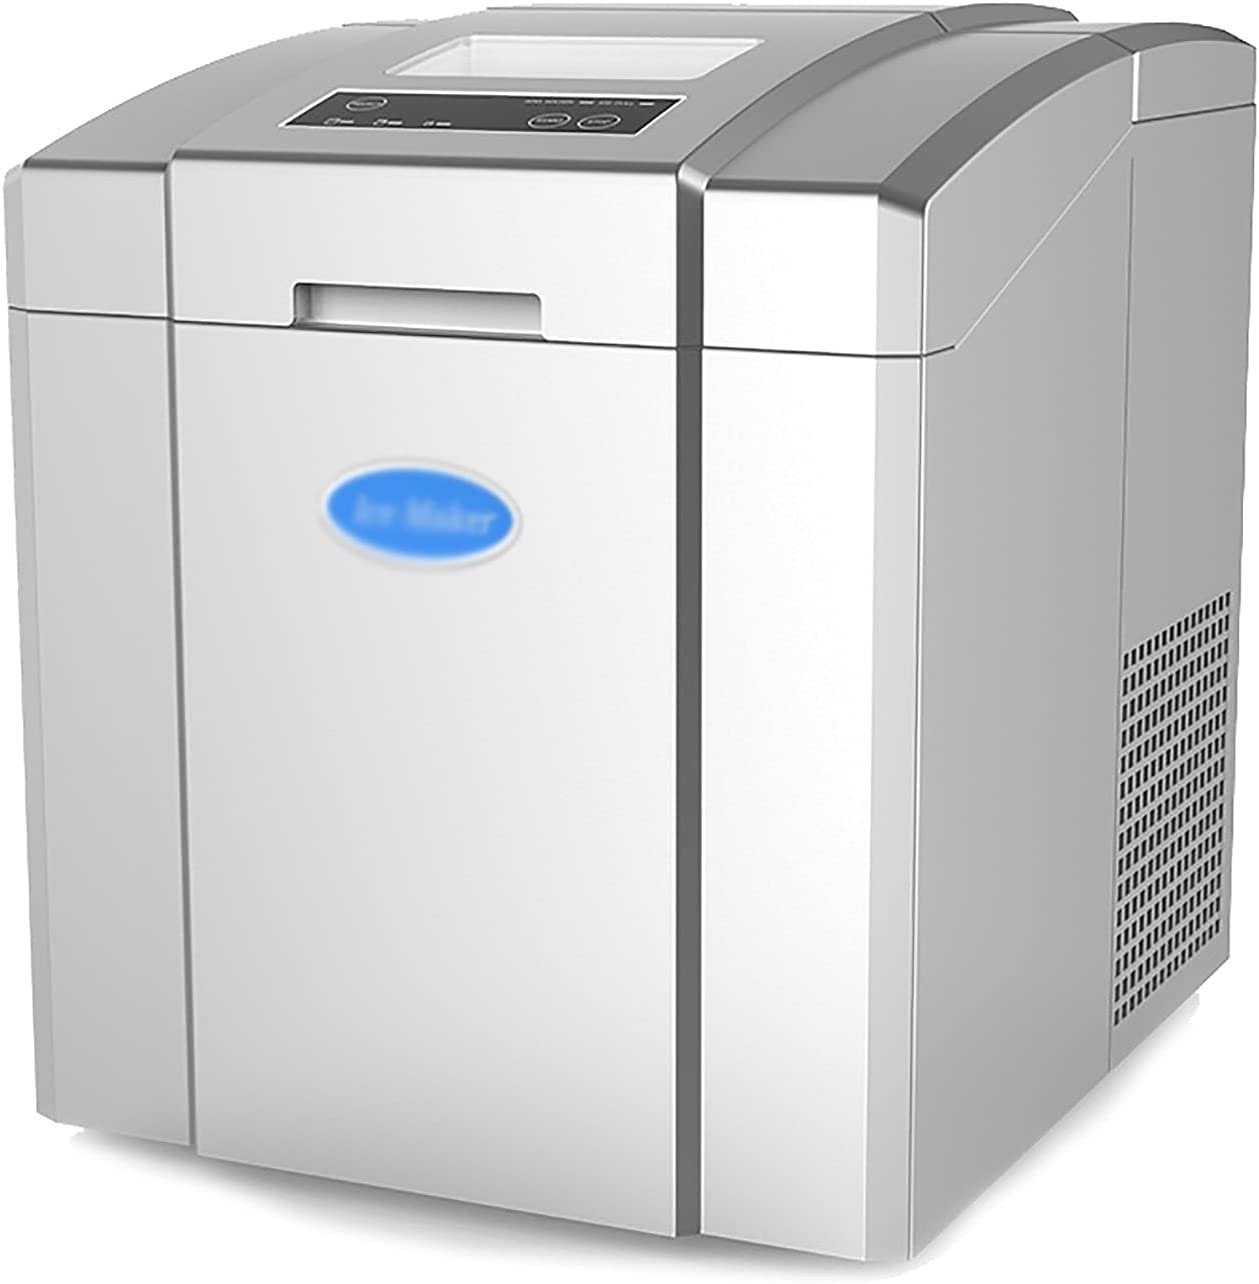 Ice Maker Machine Commercial Fully Selling Mil Automatic Small Max 56% OFF